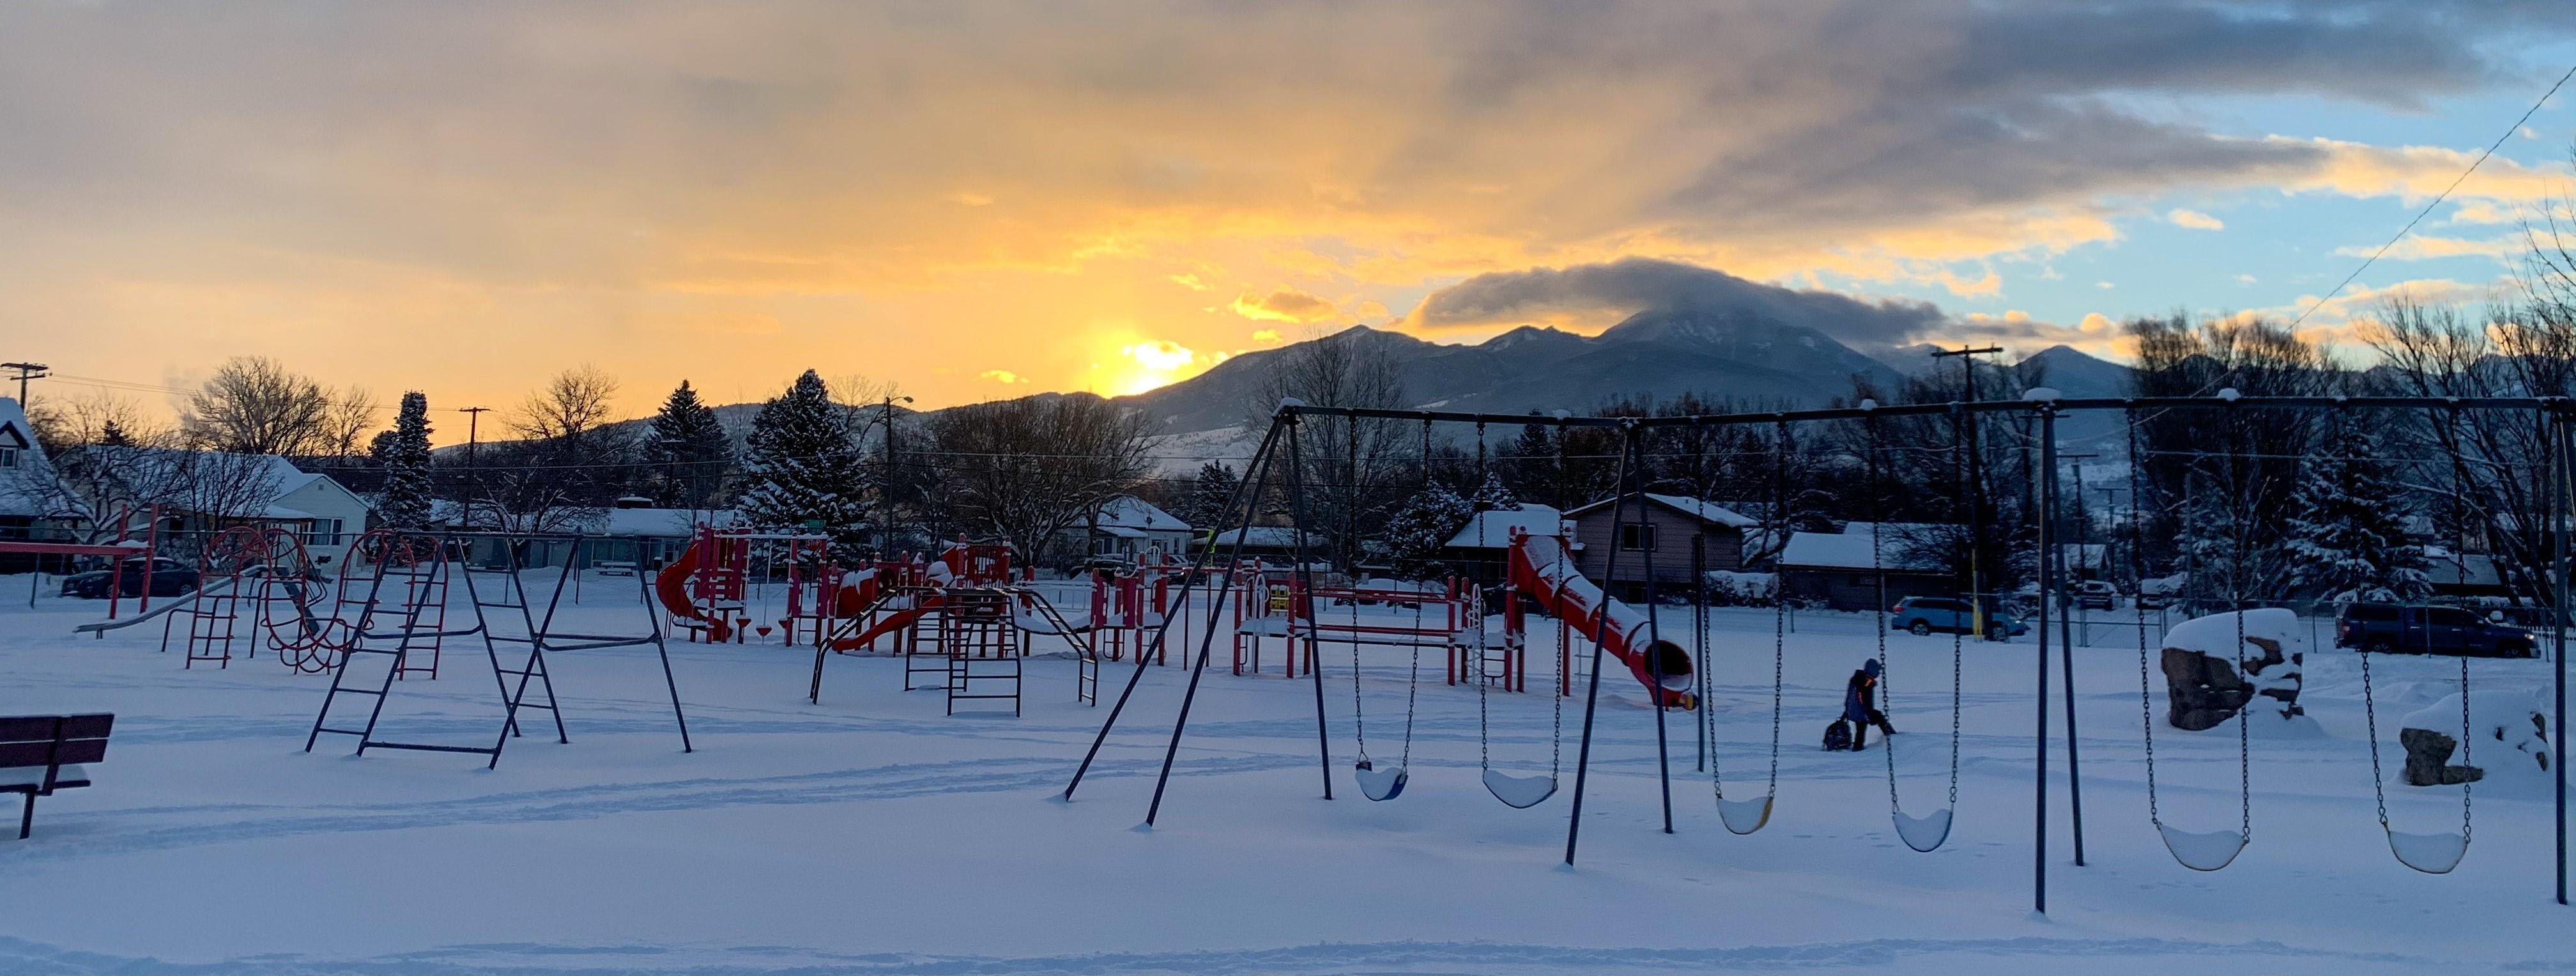 Winans playground with mountains and sunrise in background